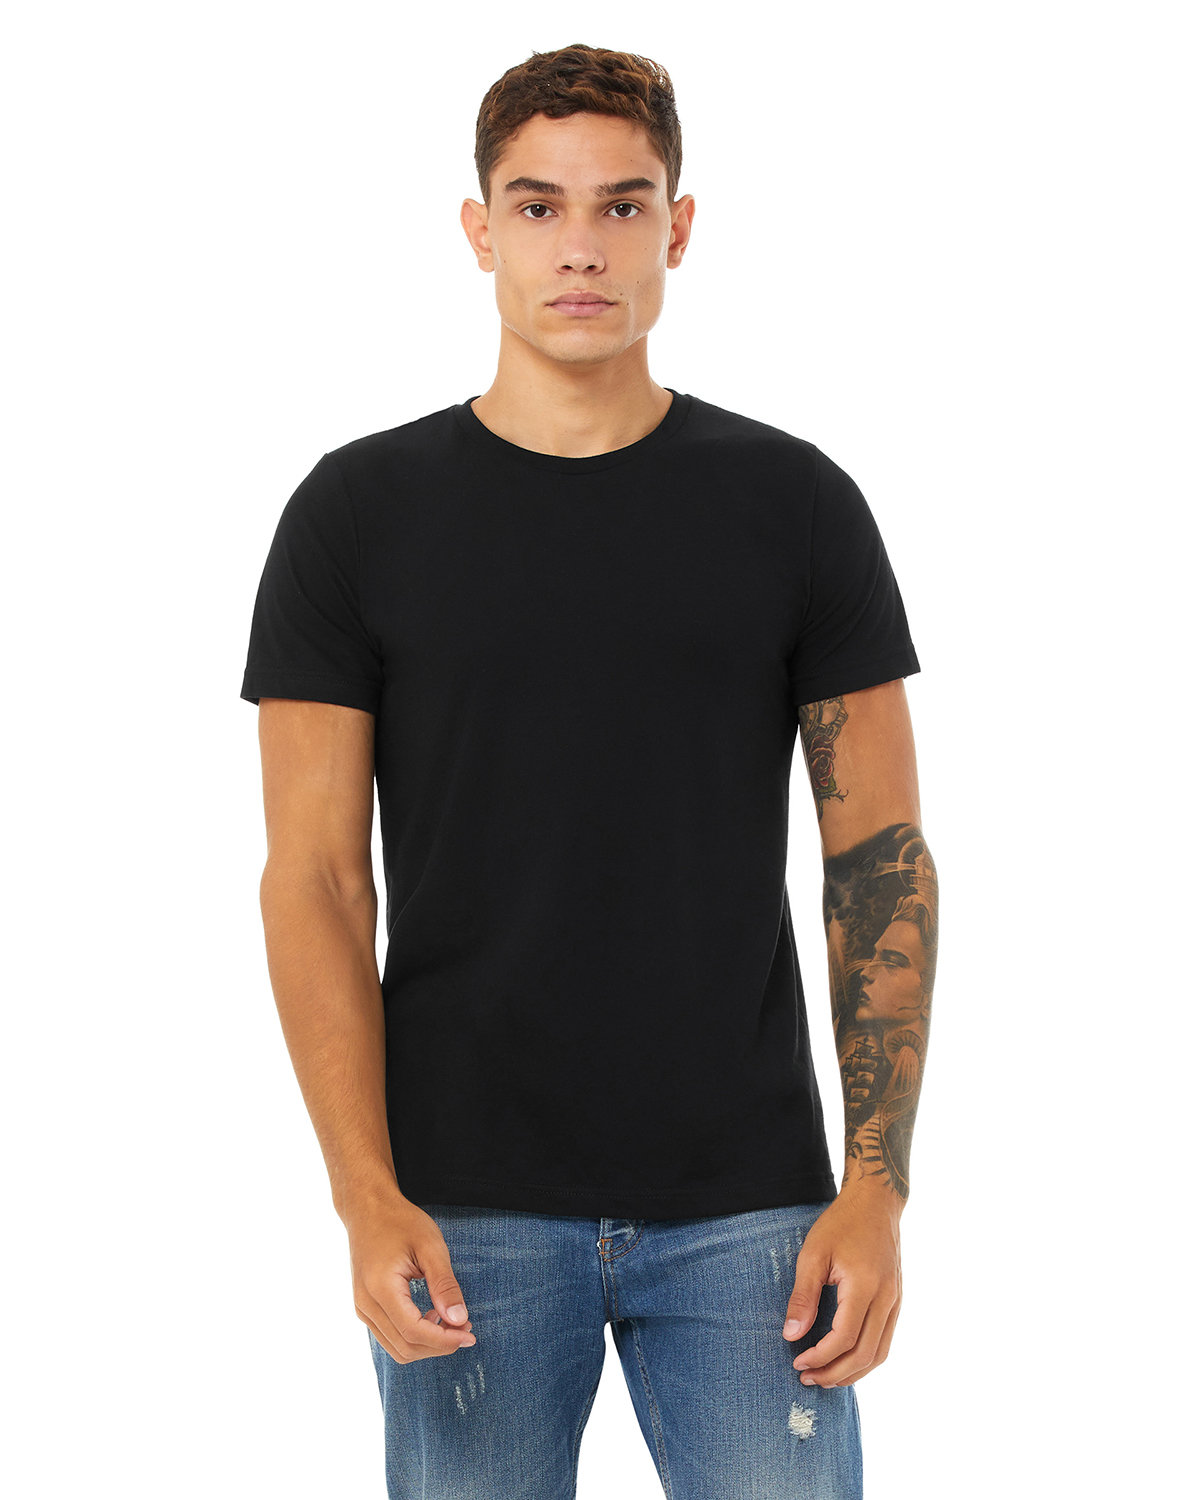 Bella + Canvas Unisex Heather CVC T-Shirt SOLID BLK BLEND